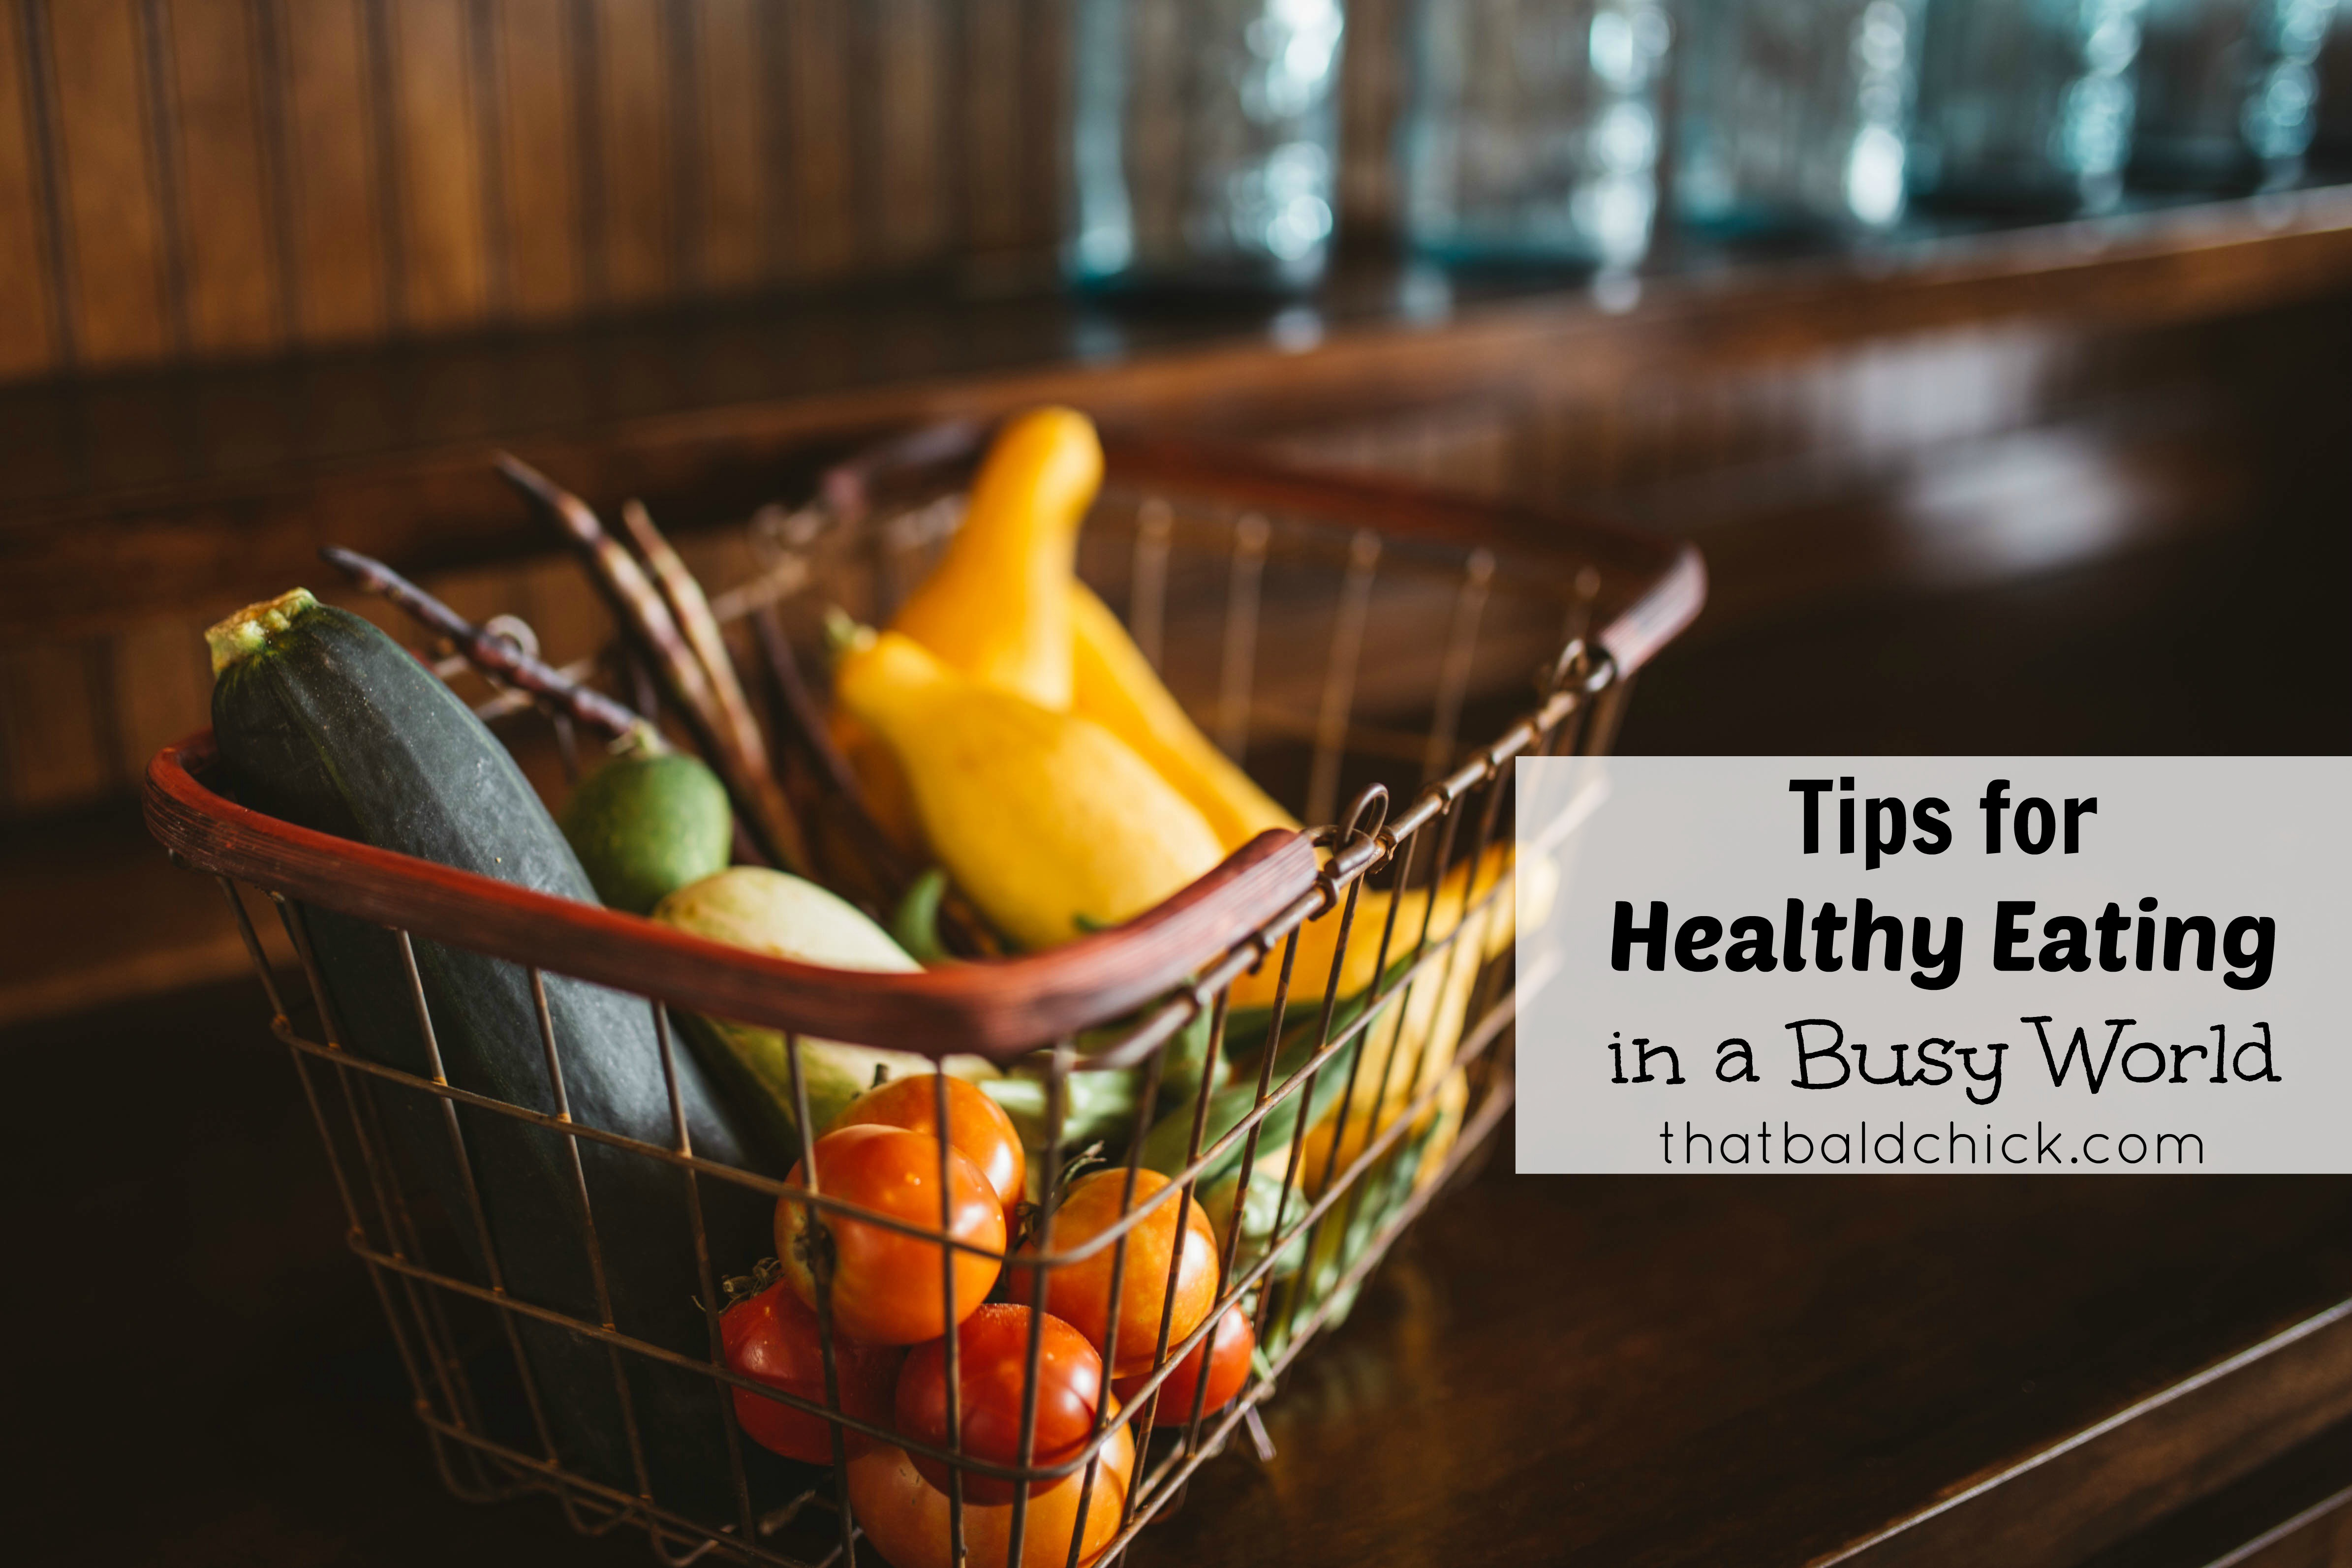 Tips for Healthy Eating in a Busy World at thatbaldchick.com